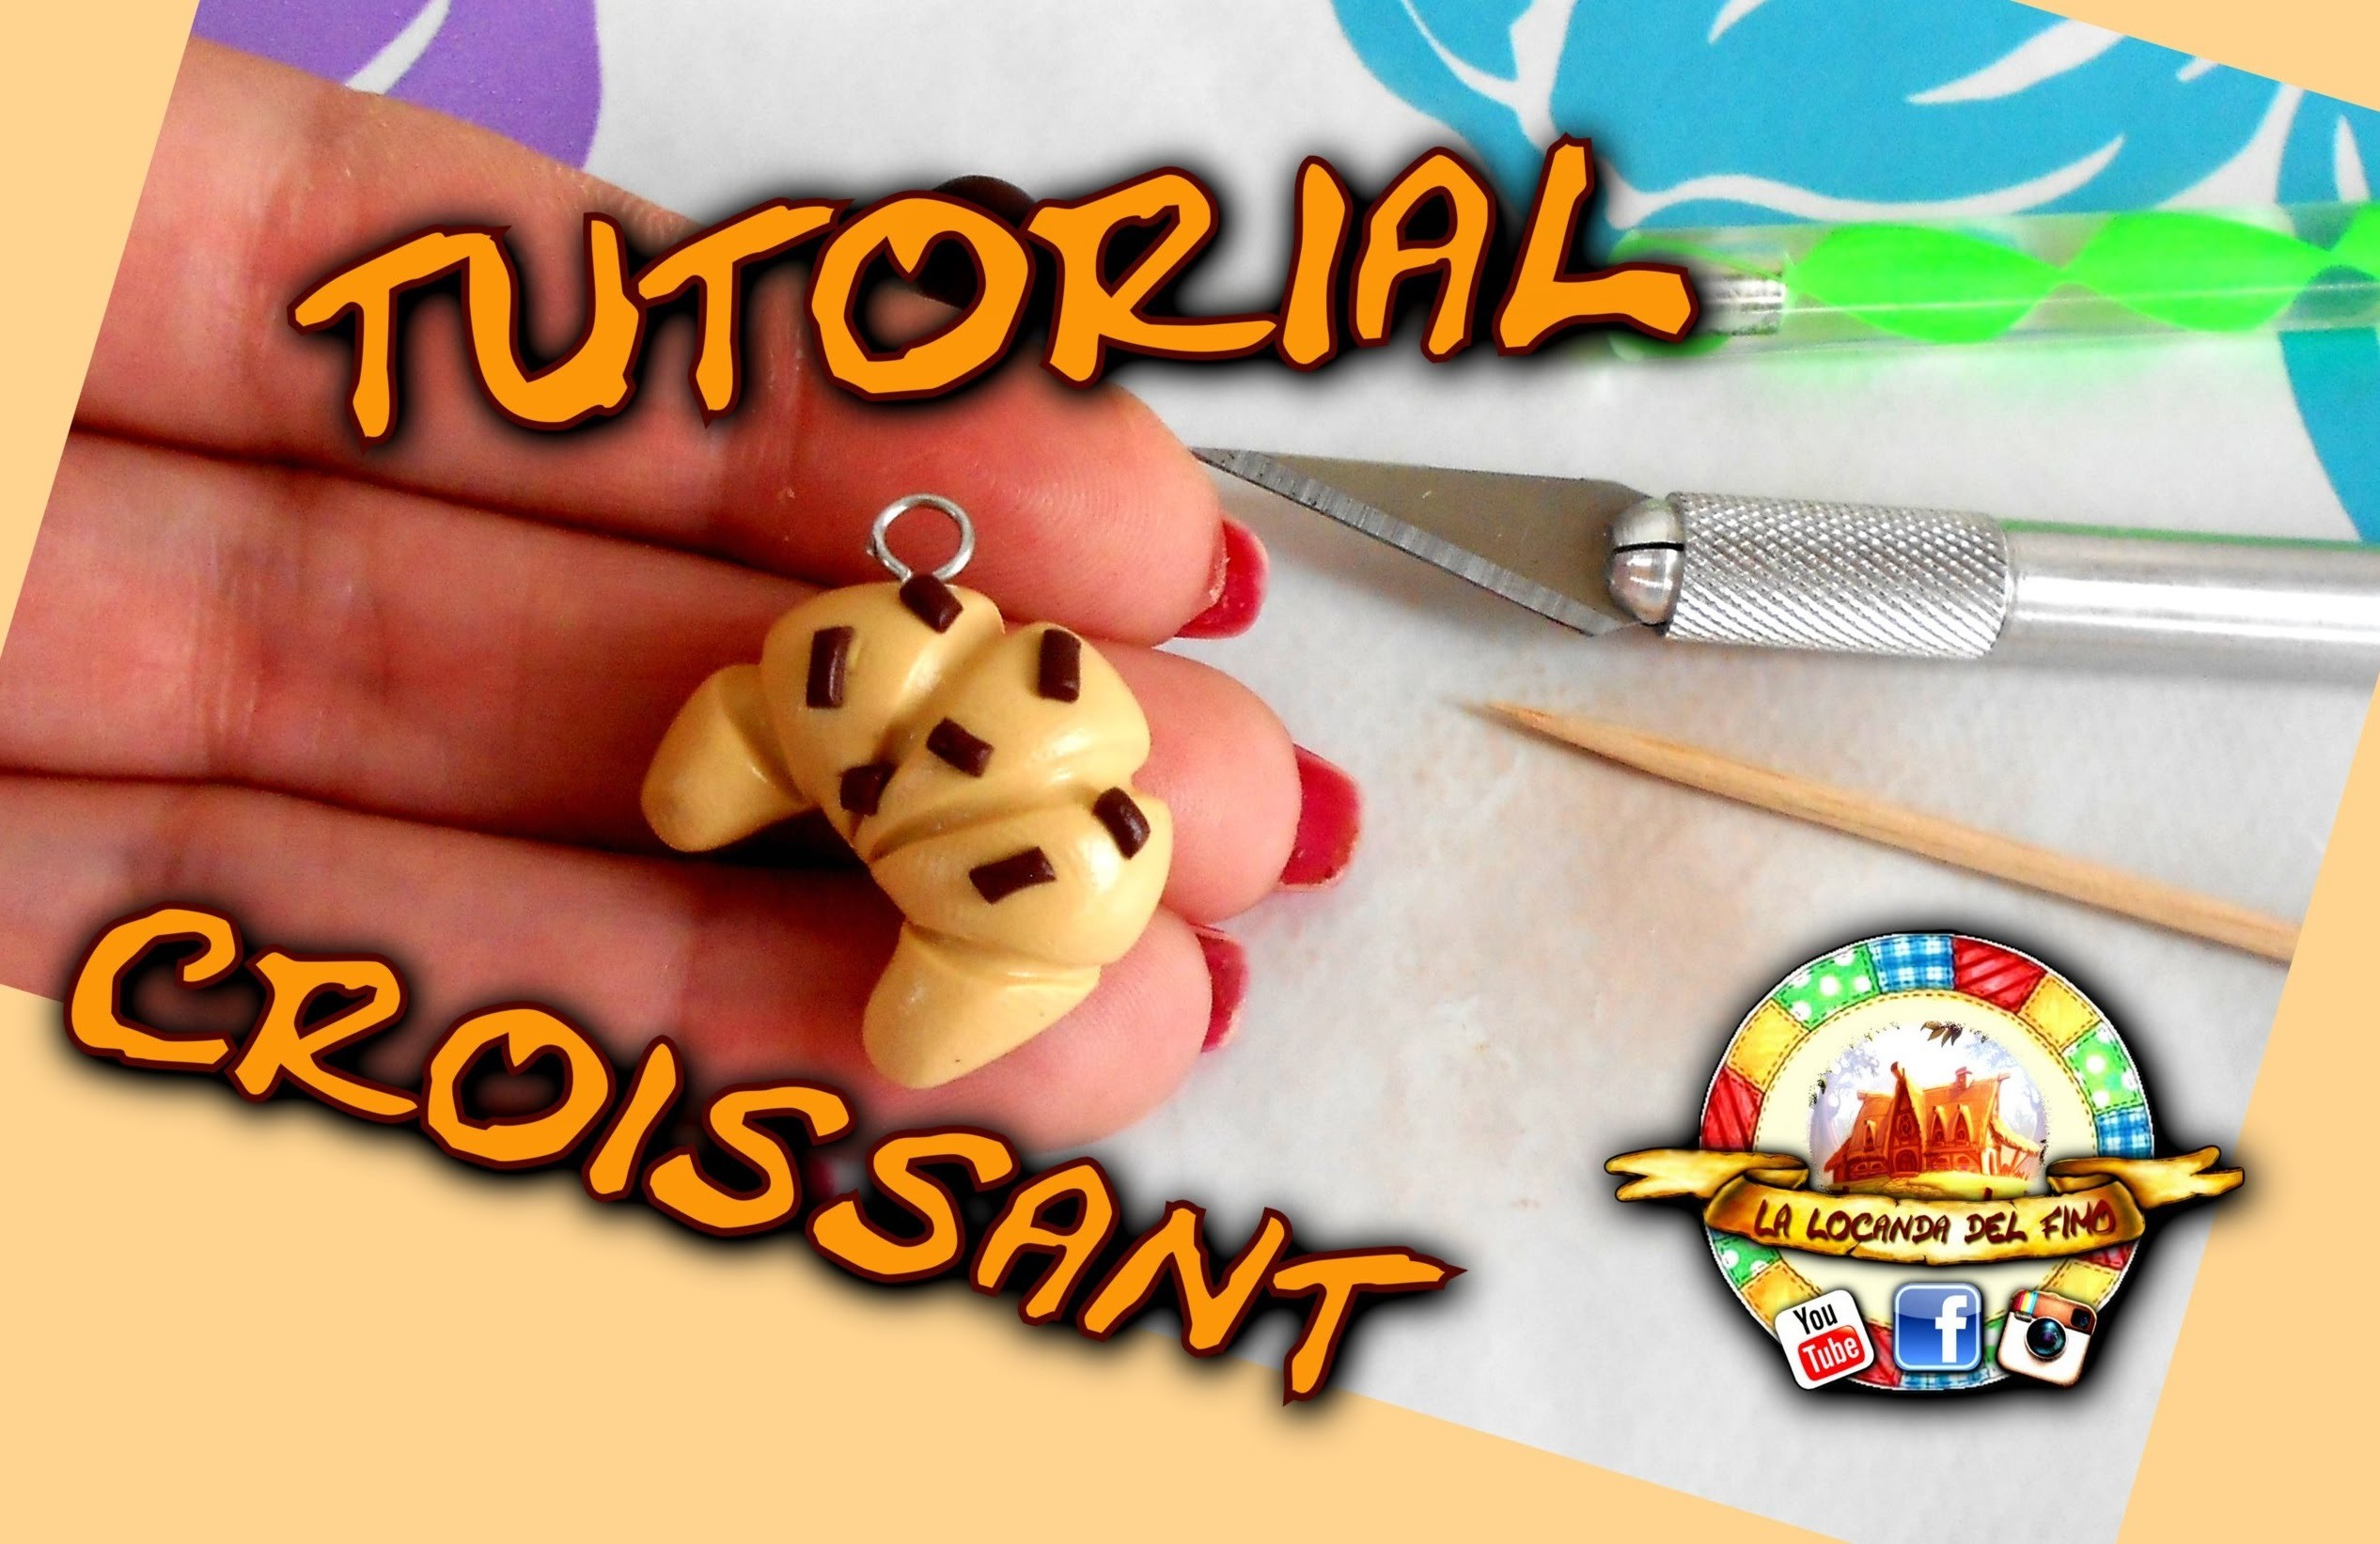 TUTORIAL FIMO --CROISSANT-- POLYMER CLAY TUTORIAL CROISSANT